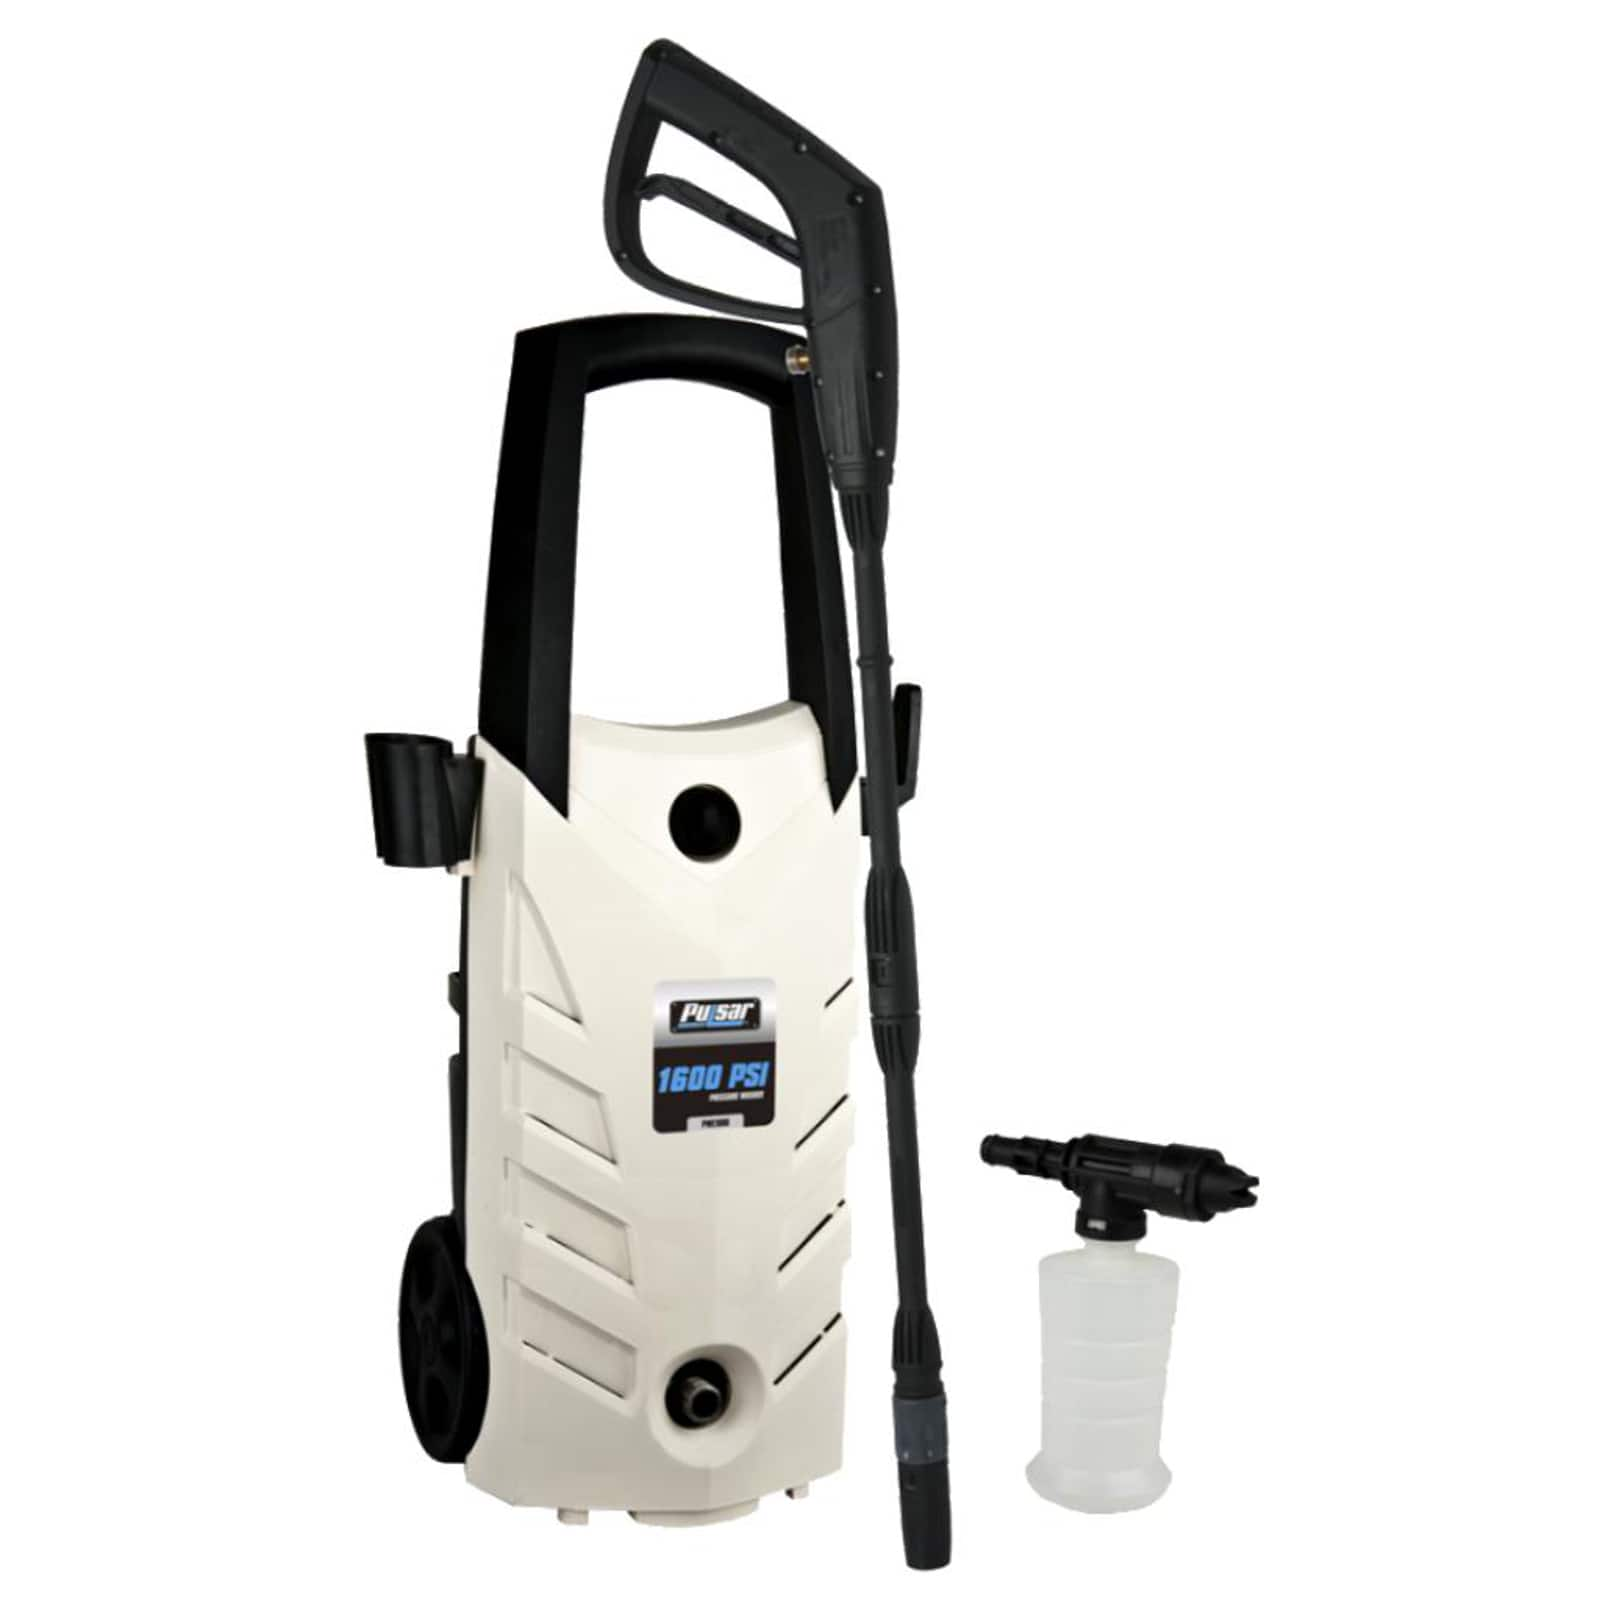 Pulsar 1600 PSI Electric Pressure Washer $53.99 @Kmart